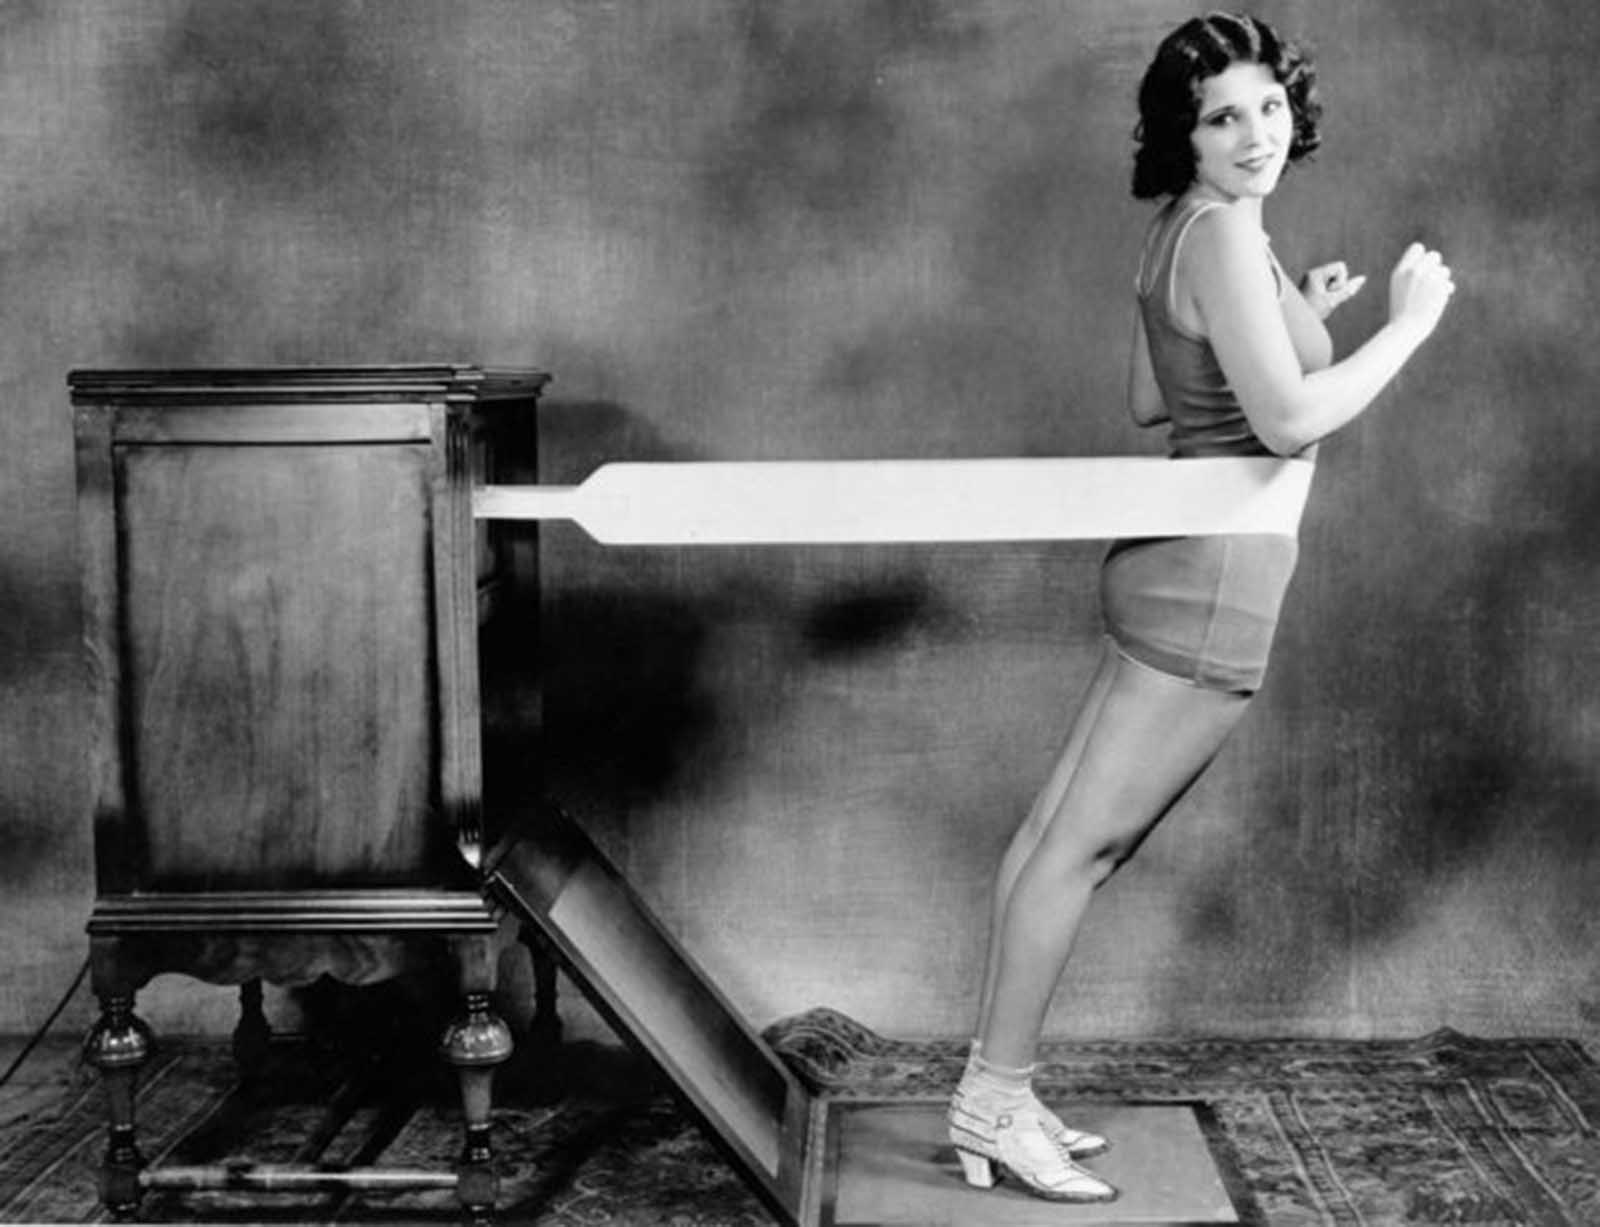 The new 'hip massage machine' from the United States, circa 1928.